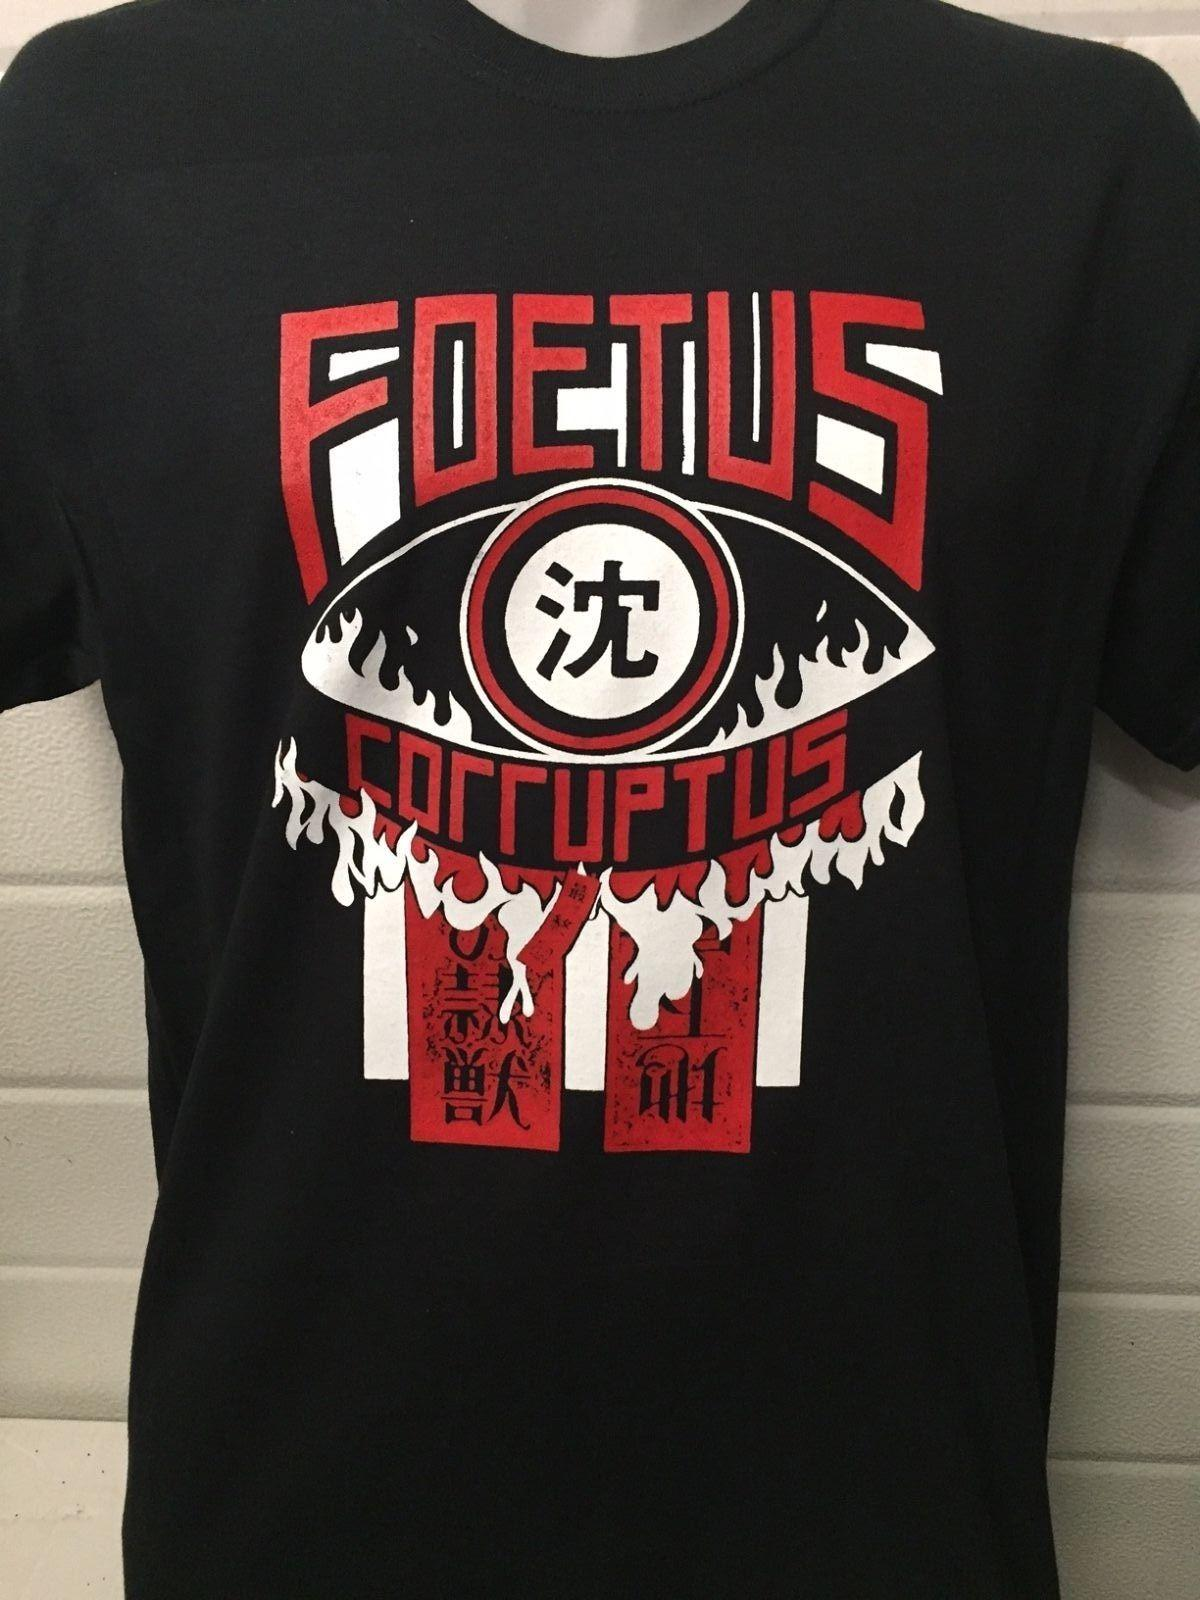 FOETUS CORRUPTUS TSHIRT Lydia Lunch Birthday Party Cd Poster Vinyl ALL SIZES Funny Unisex Casual Top Online T Shirt Buy Joke From Countrysidelocks